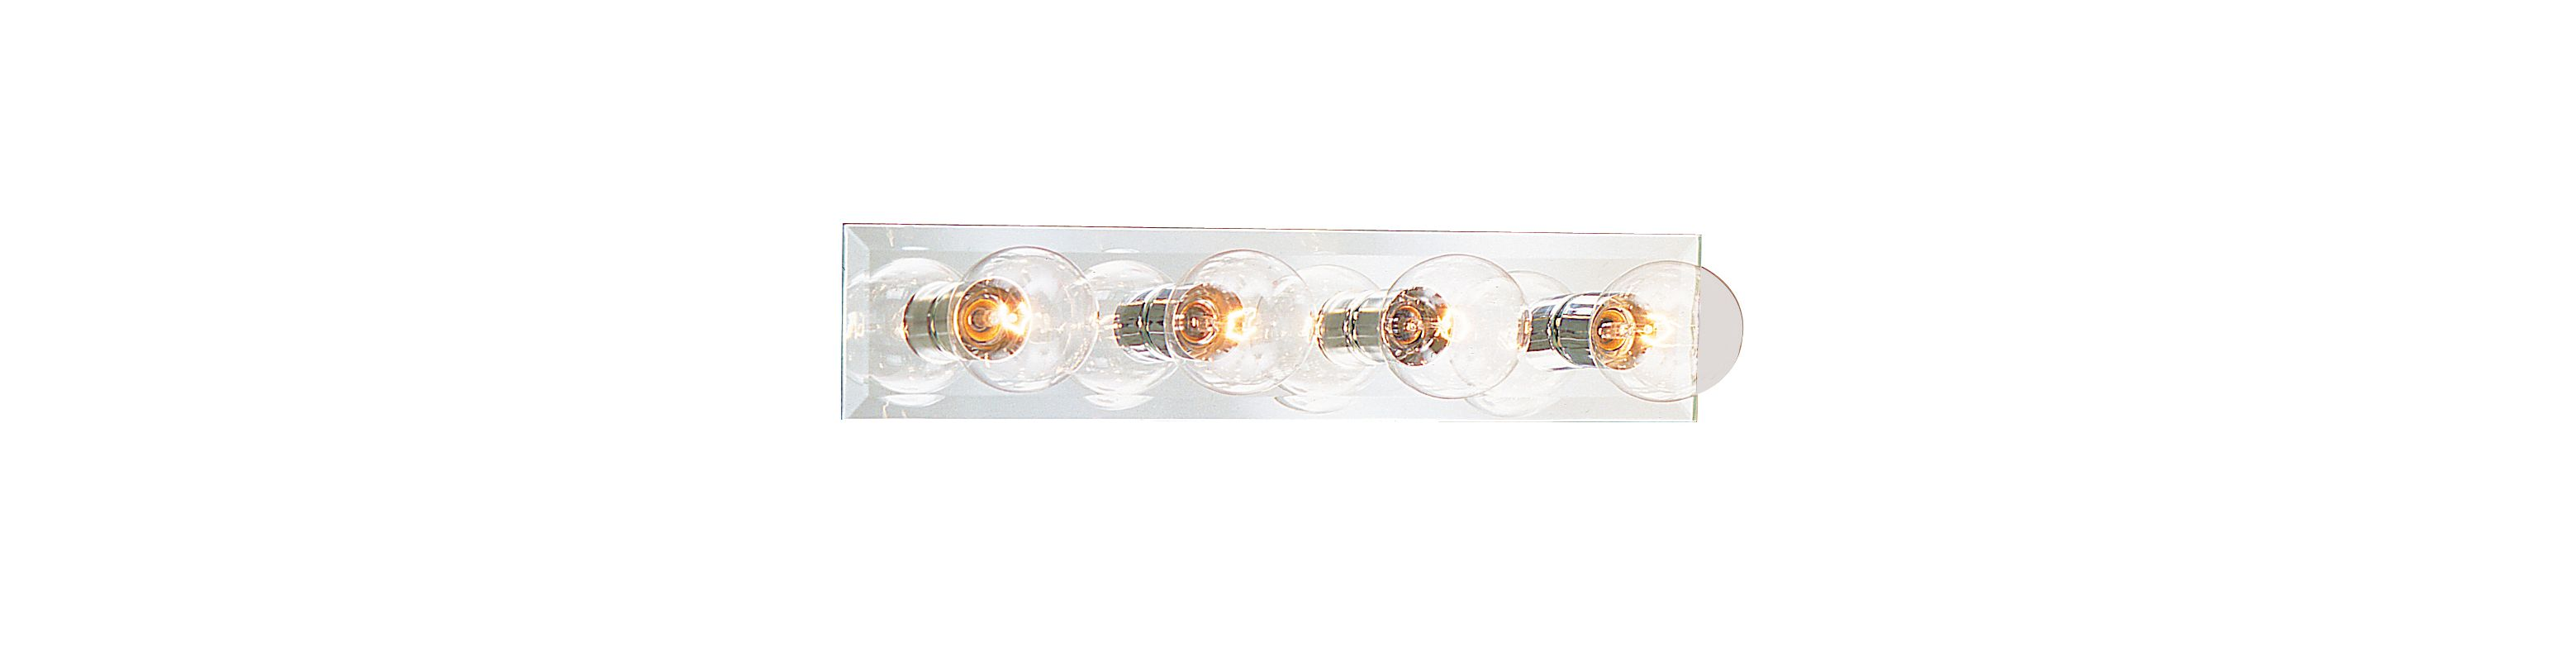 "Thomas Lighting SL7324 Functional 4 Light 24.75"" Wide Bathroom Fixture"